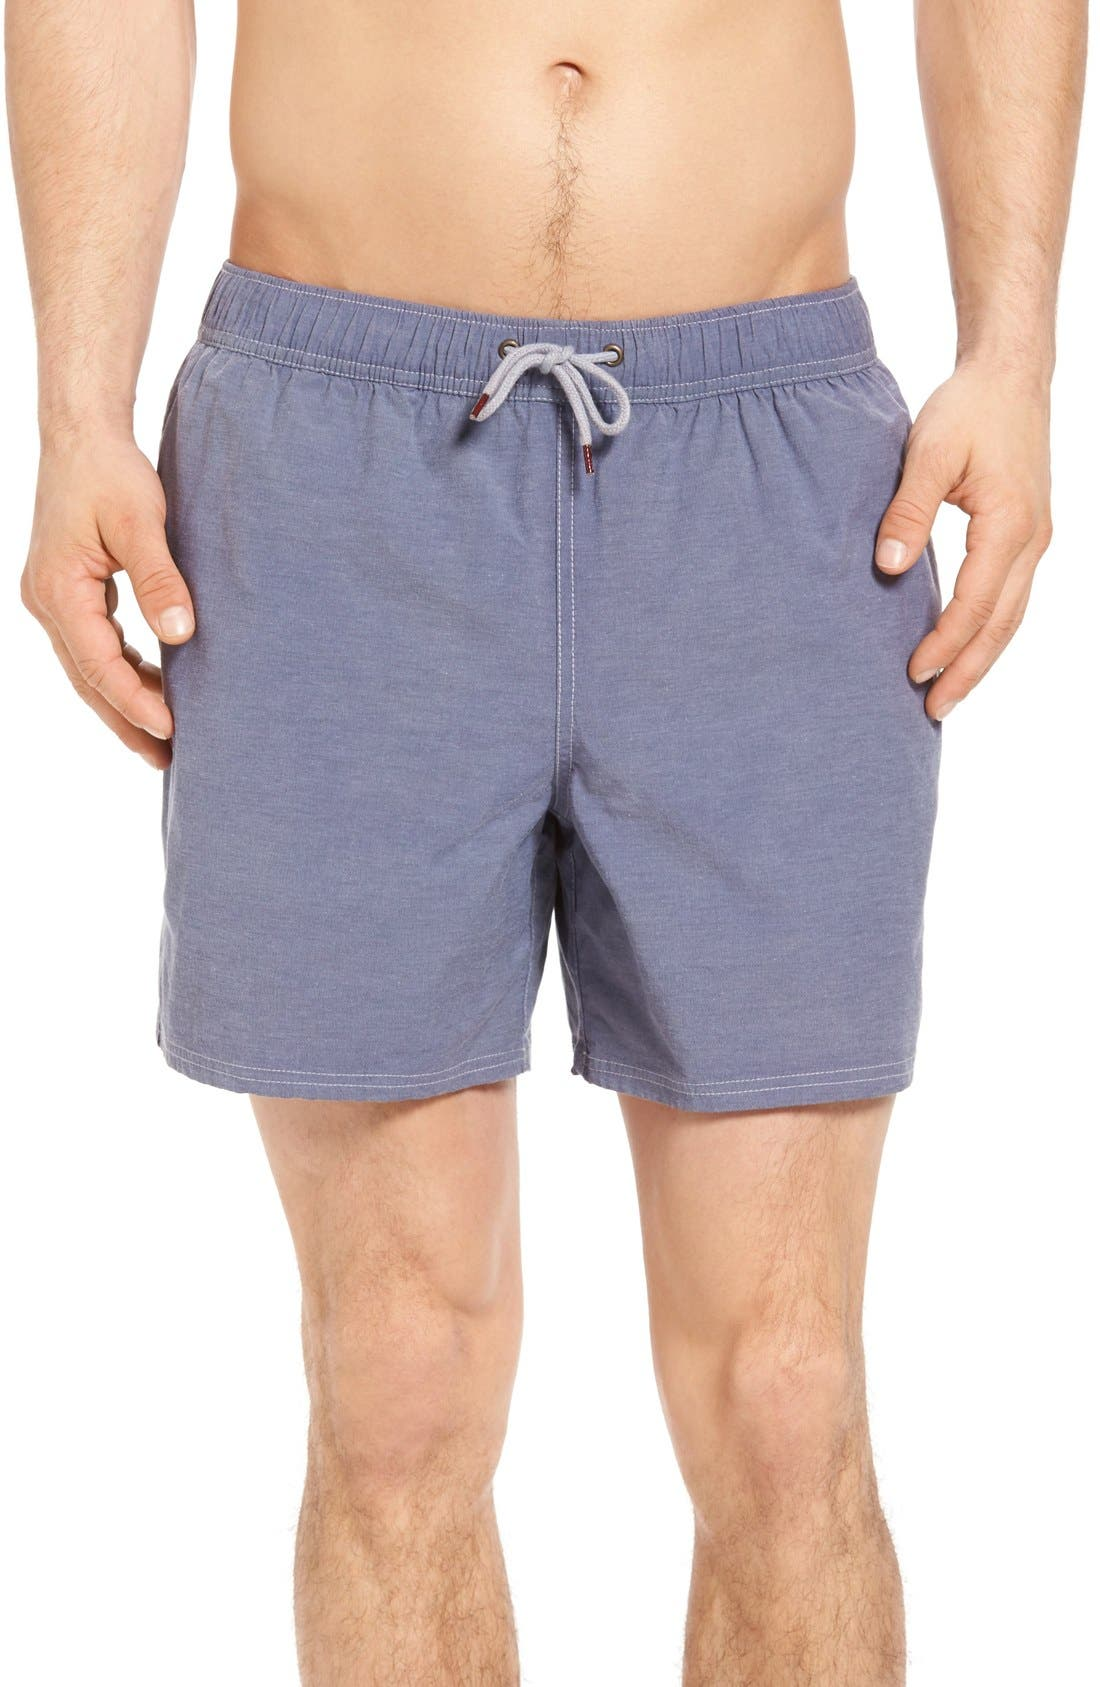 Waikiki Board Shorts,                             Main thumbnail 1, color,